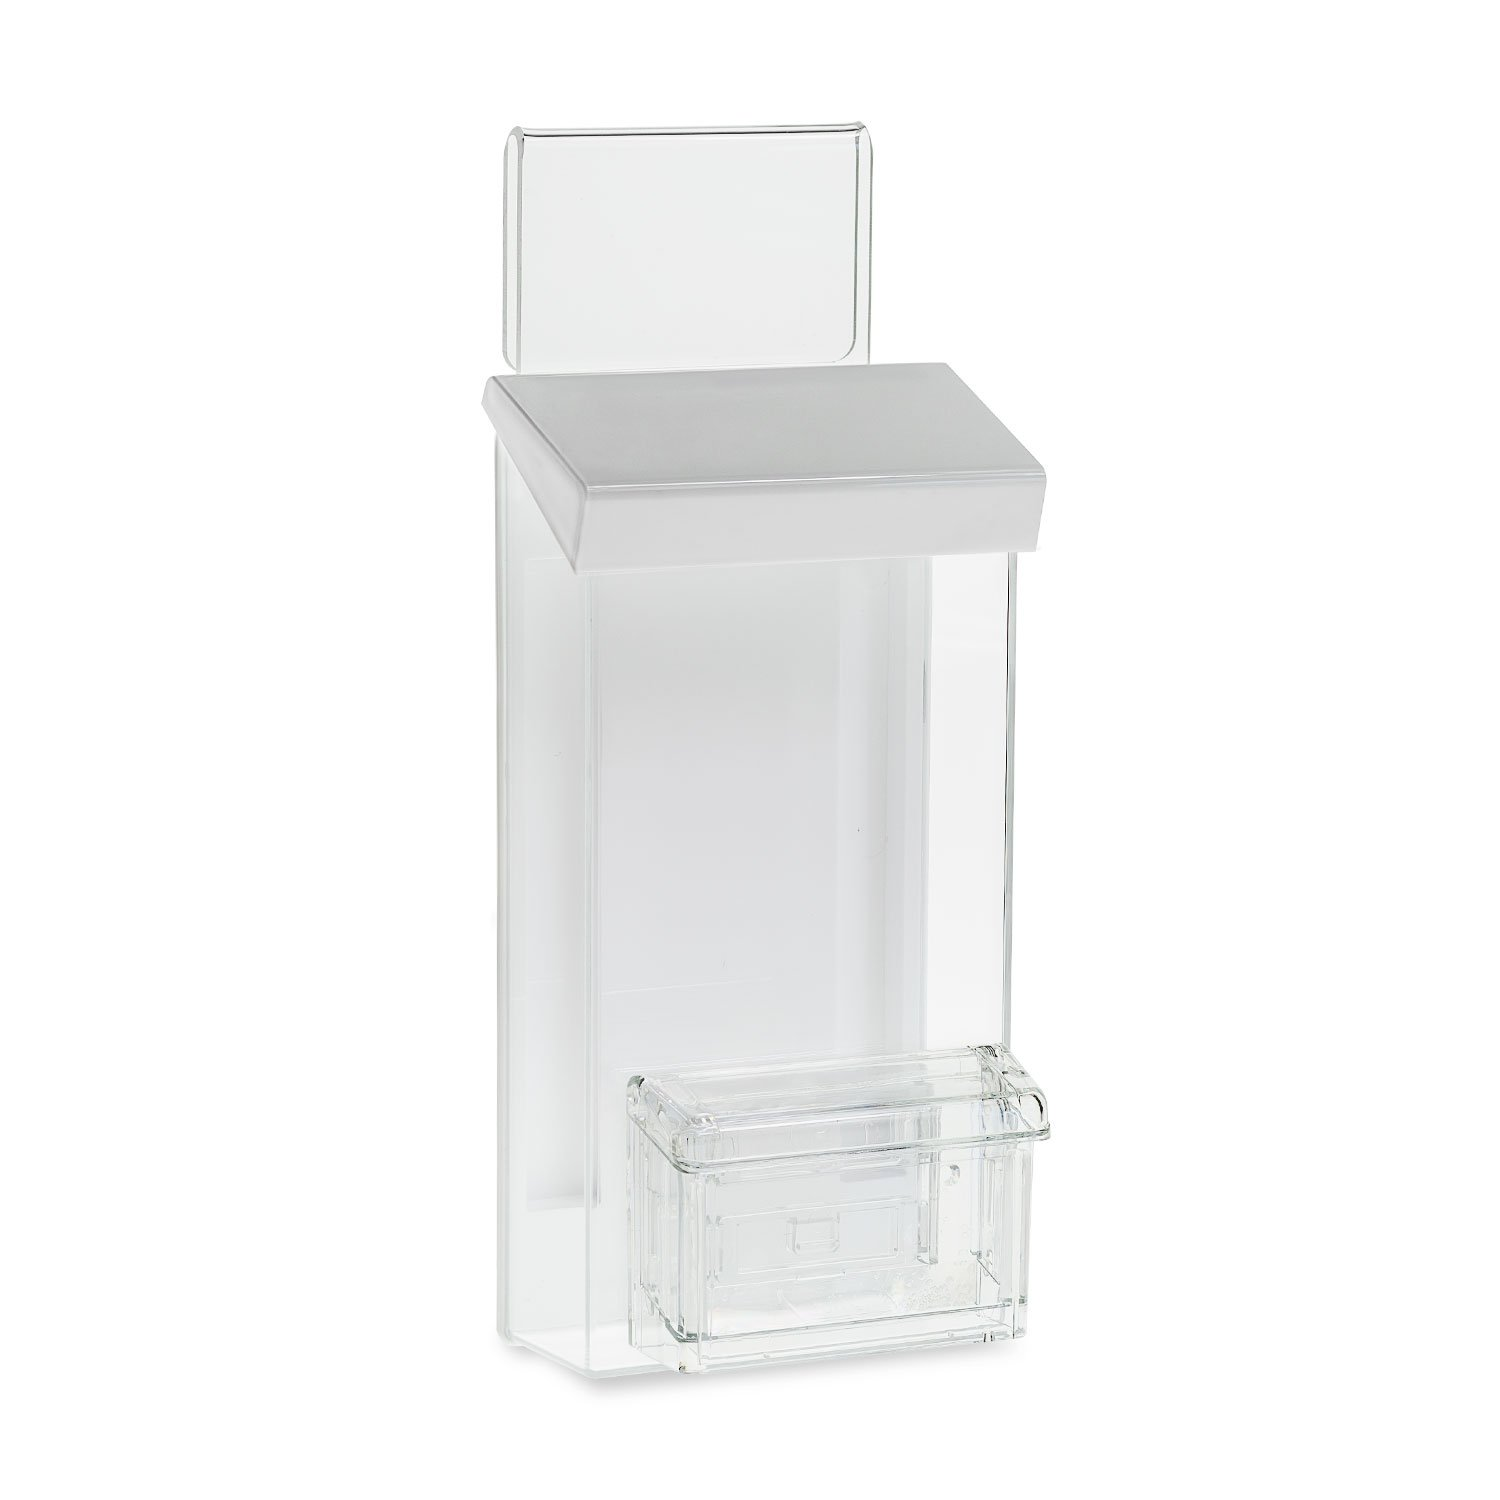 Source One Auto Window Brochure Holder/Business Card Holder (S1-TRI-BC-Hook)